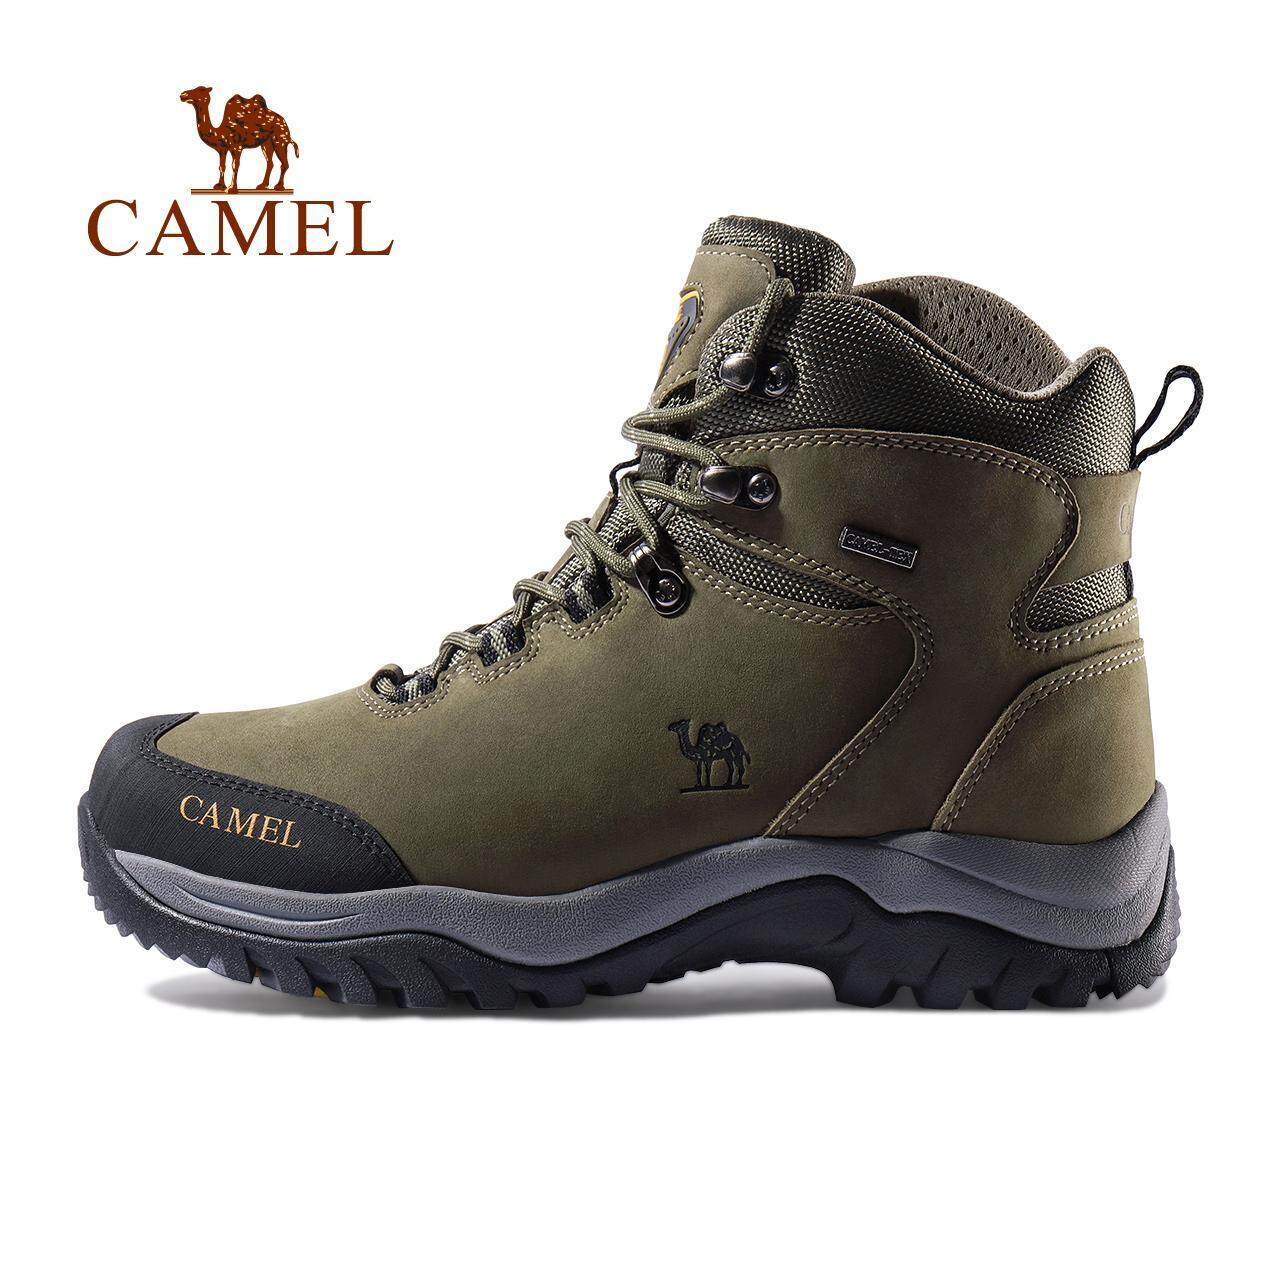 a4b6e142f6c Camel men's outdoor cow leather hiking shoes breathable climbing ankle  boots lace up Non-slip climbing shoes travel camping sports shoes Mountain  ...